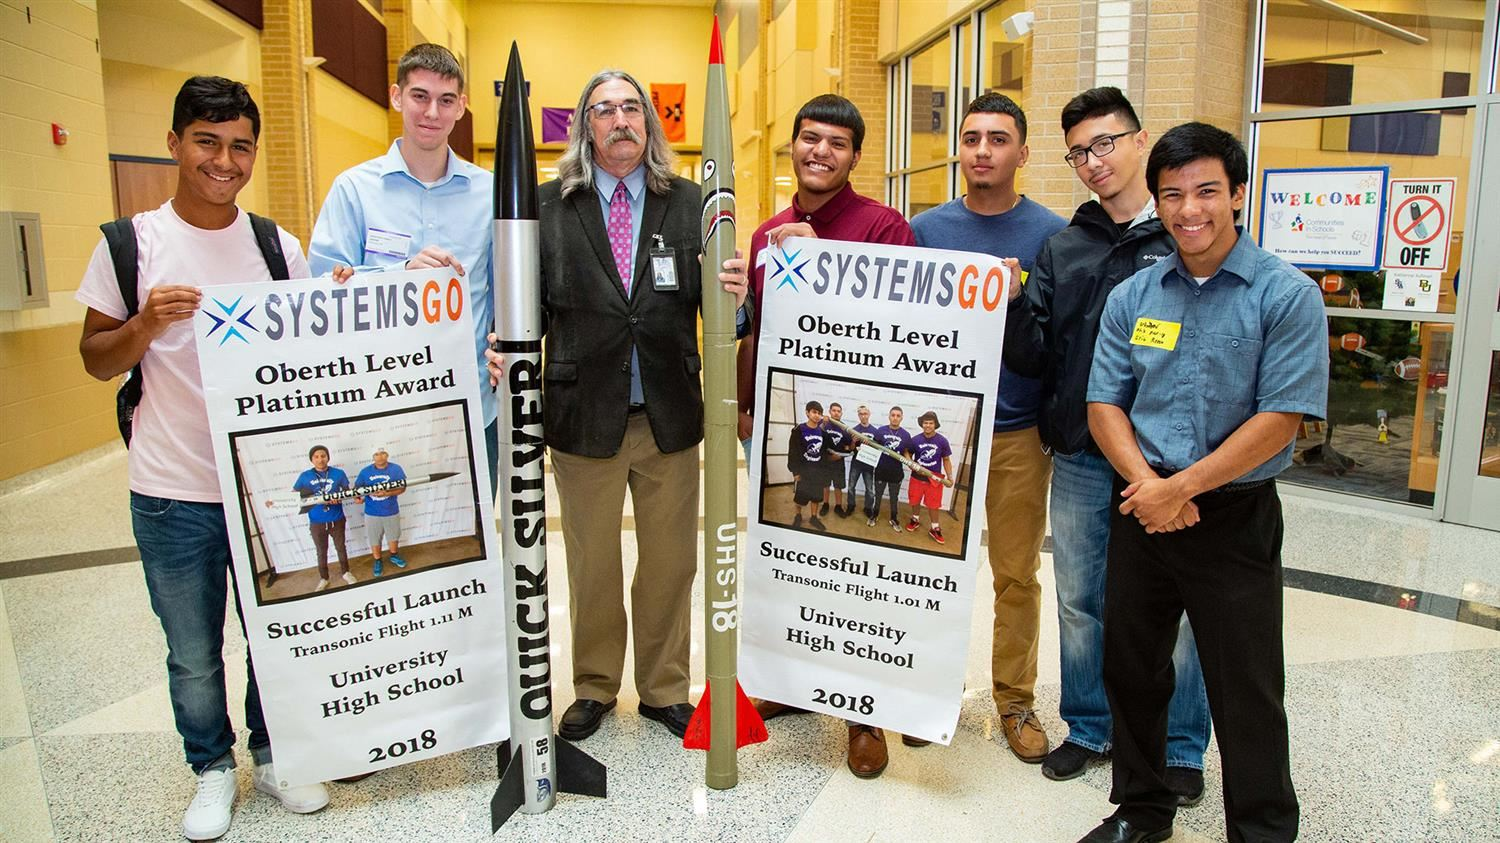 The University High rocketry team